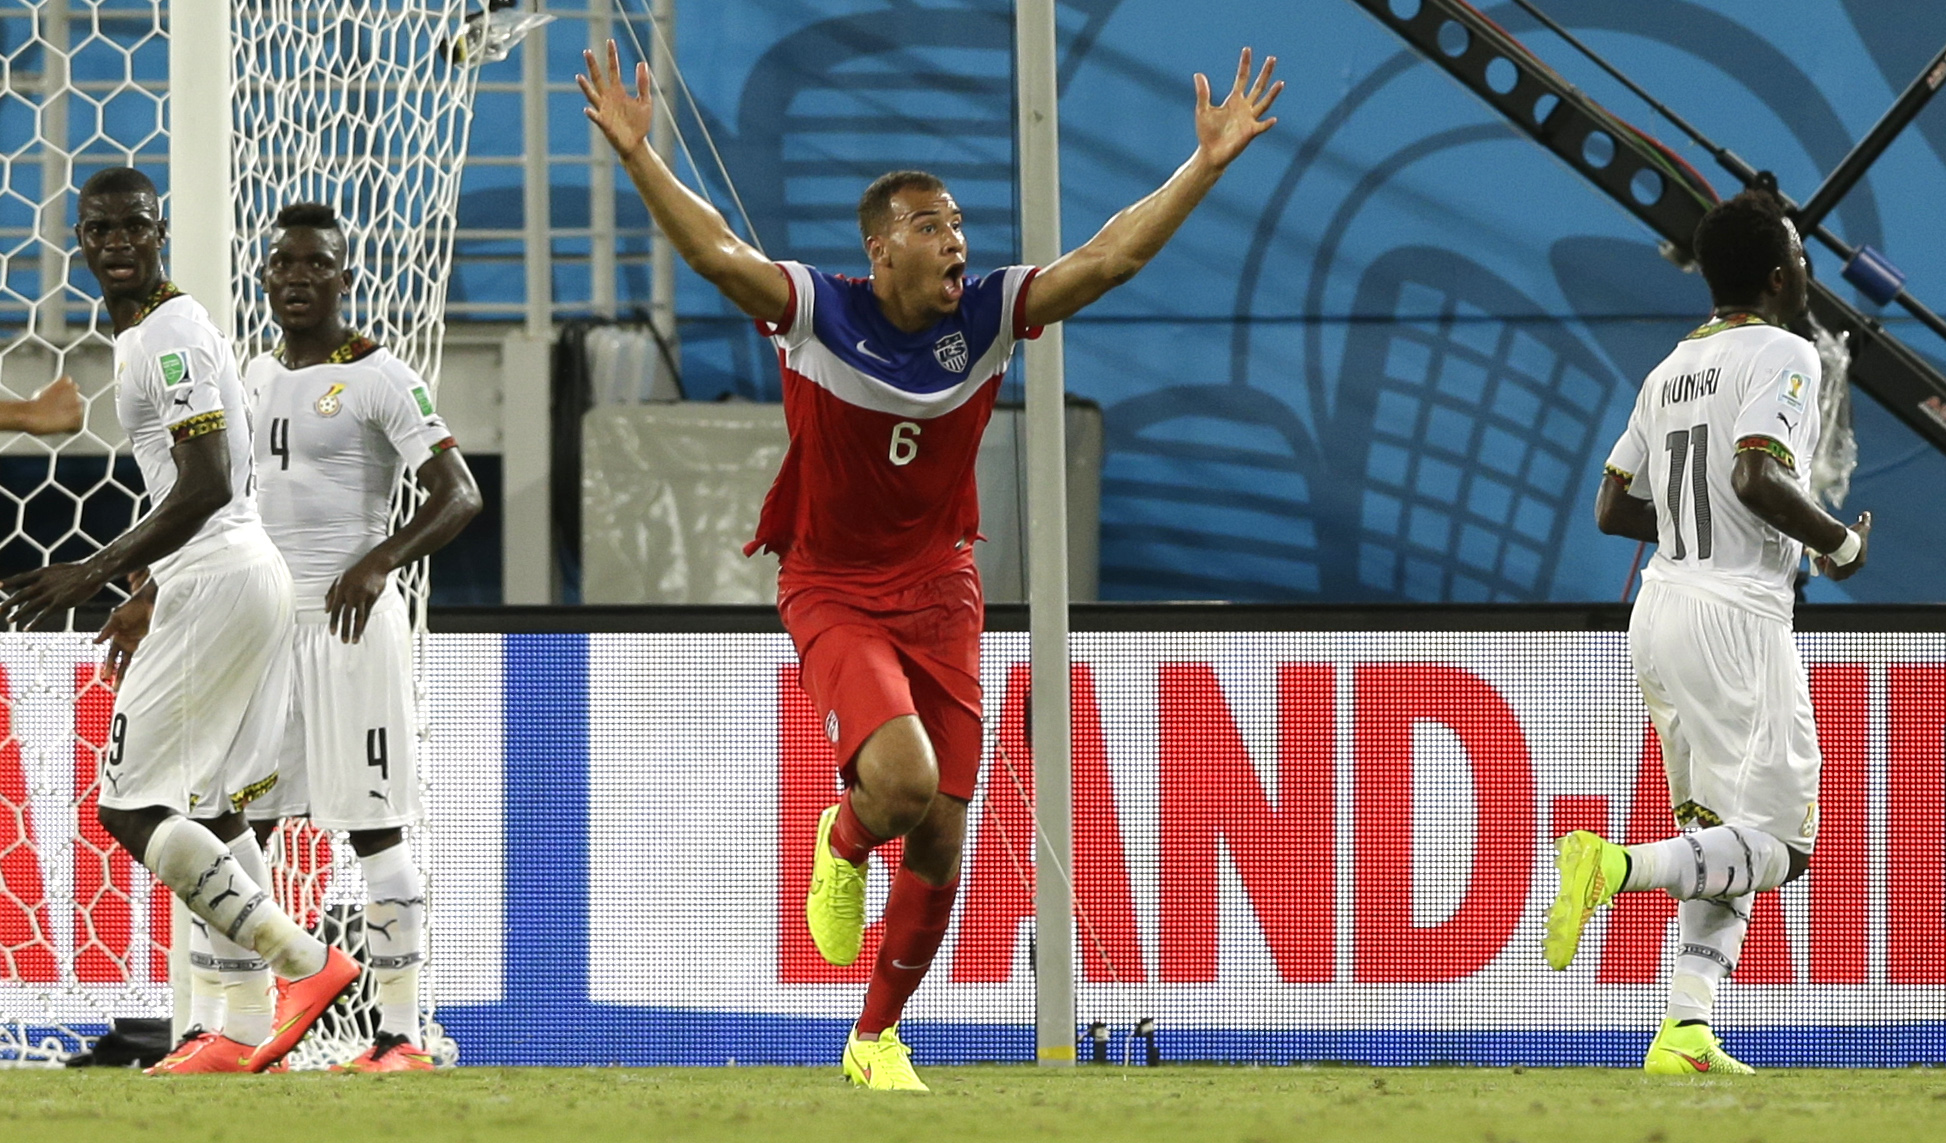 United States' John Brooks celebrates after scoring his side's second goal during the group G World Cup soccer match between Ghana and the United States at the Arena das Dunas in Natal, Brazil on June 16, 2014.